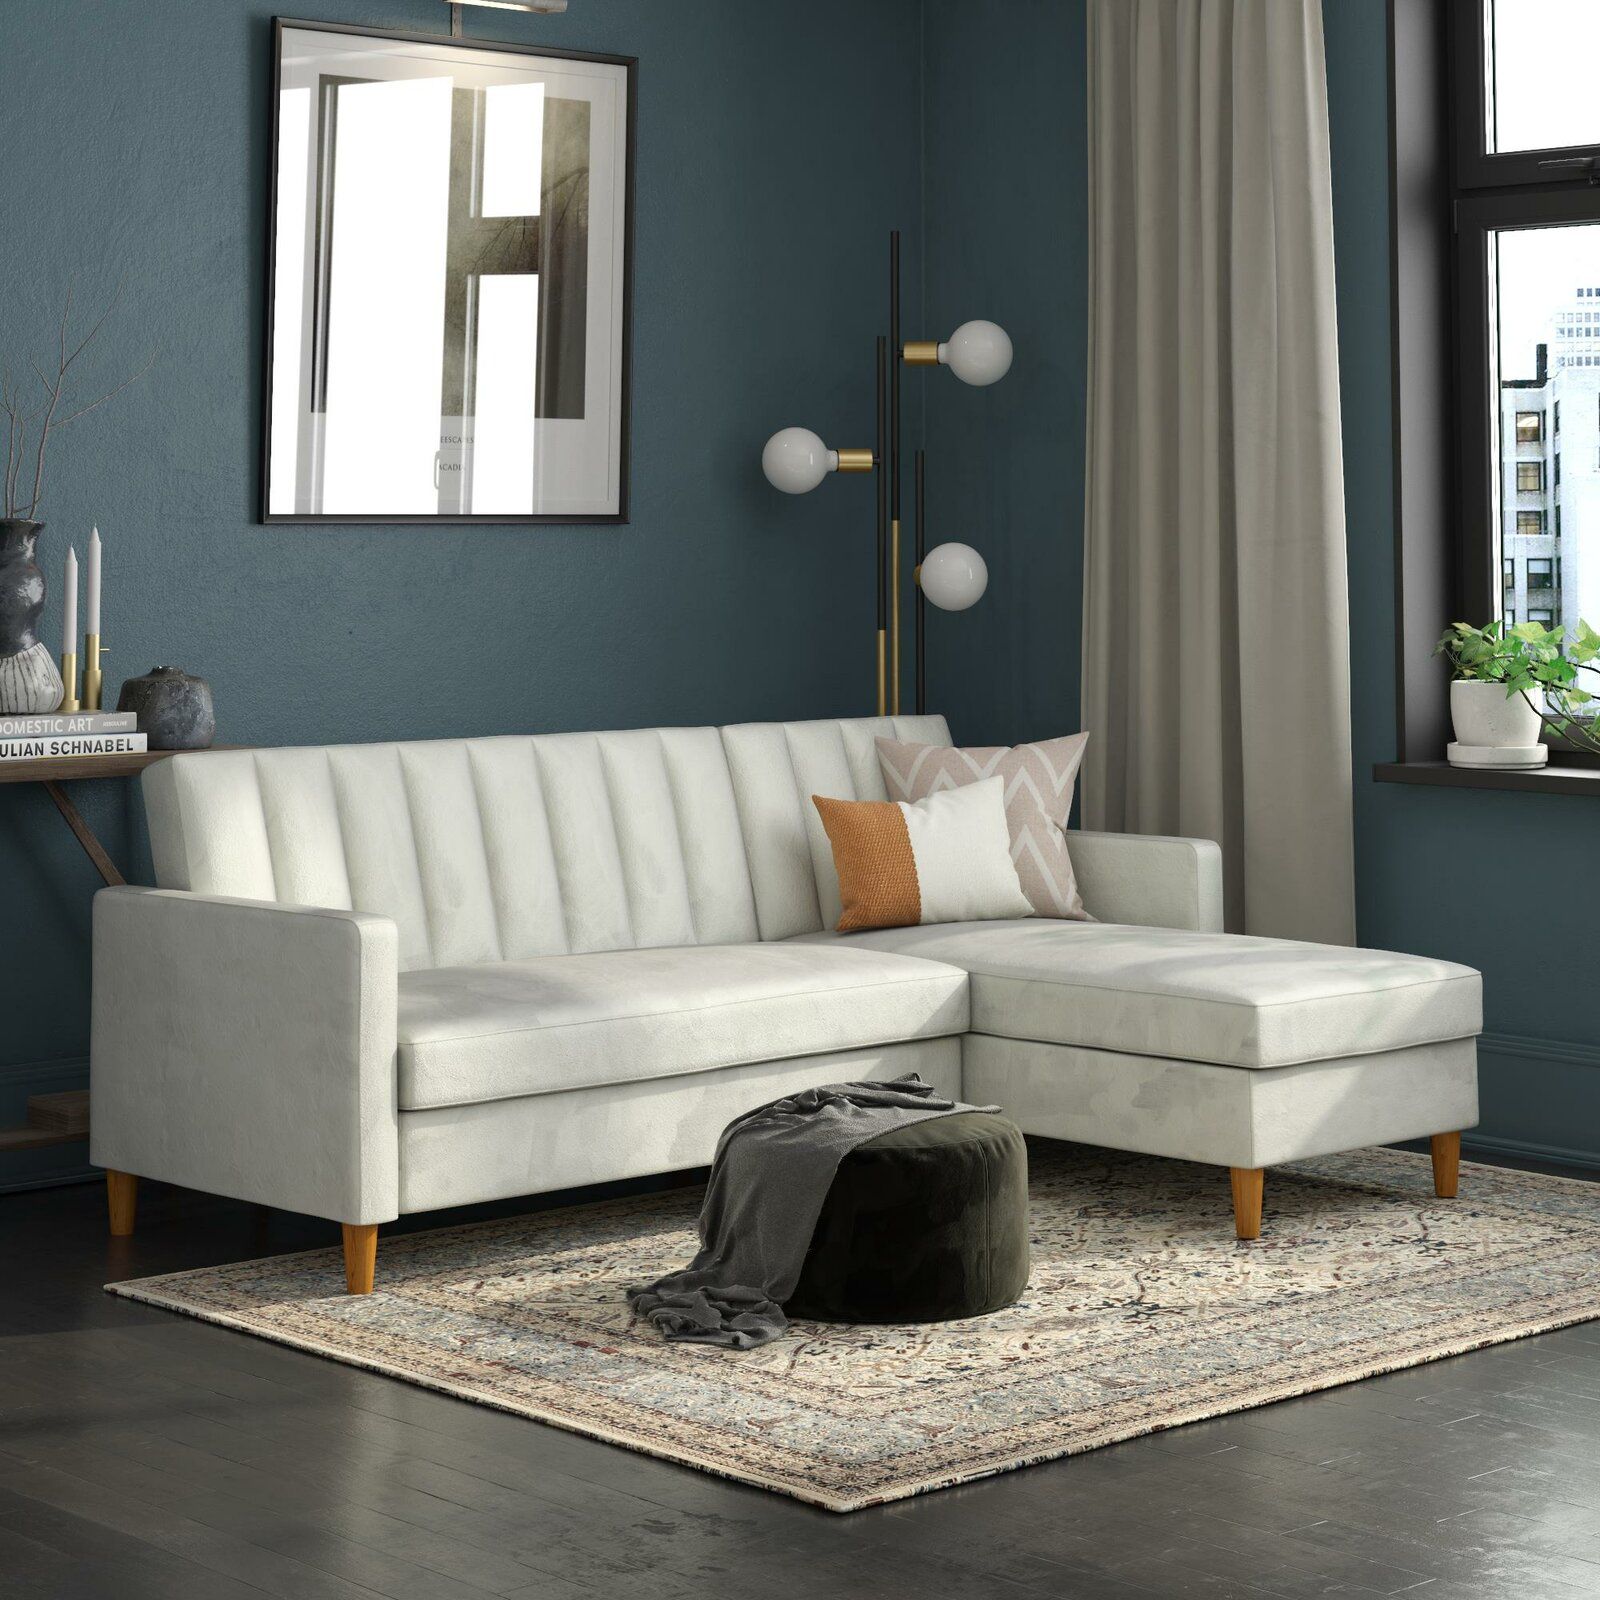 small-space-sectional-sofa-white-upholstery-channel-tufted-back-84-inch-couch-with-storage-chaise